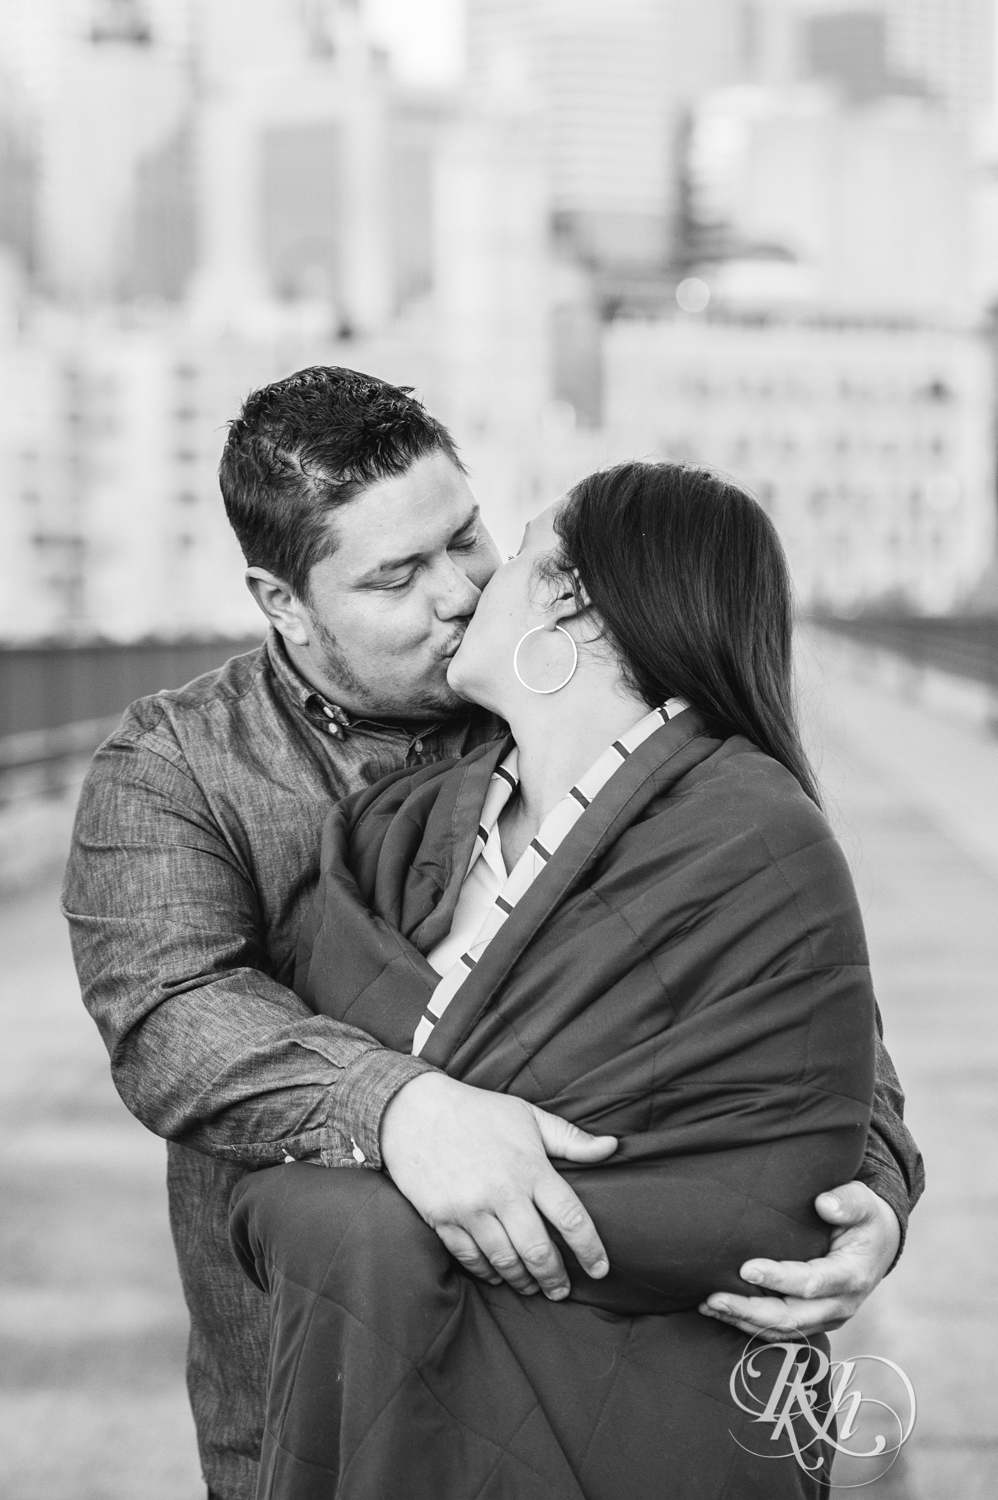 Jolene & Mike - Minnesota Engagement Photography - Sunrise - Stone Arch Bride and St. Anthony Main - RKH Images  (5 of 12).jpg